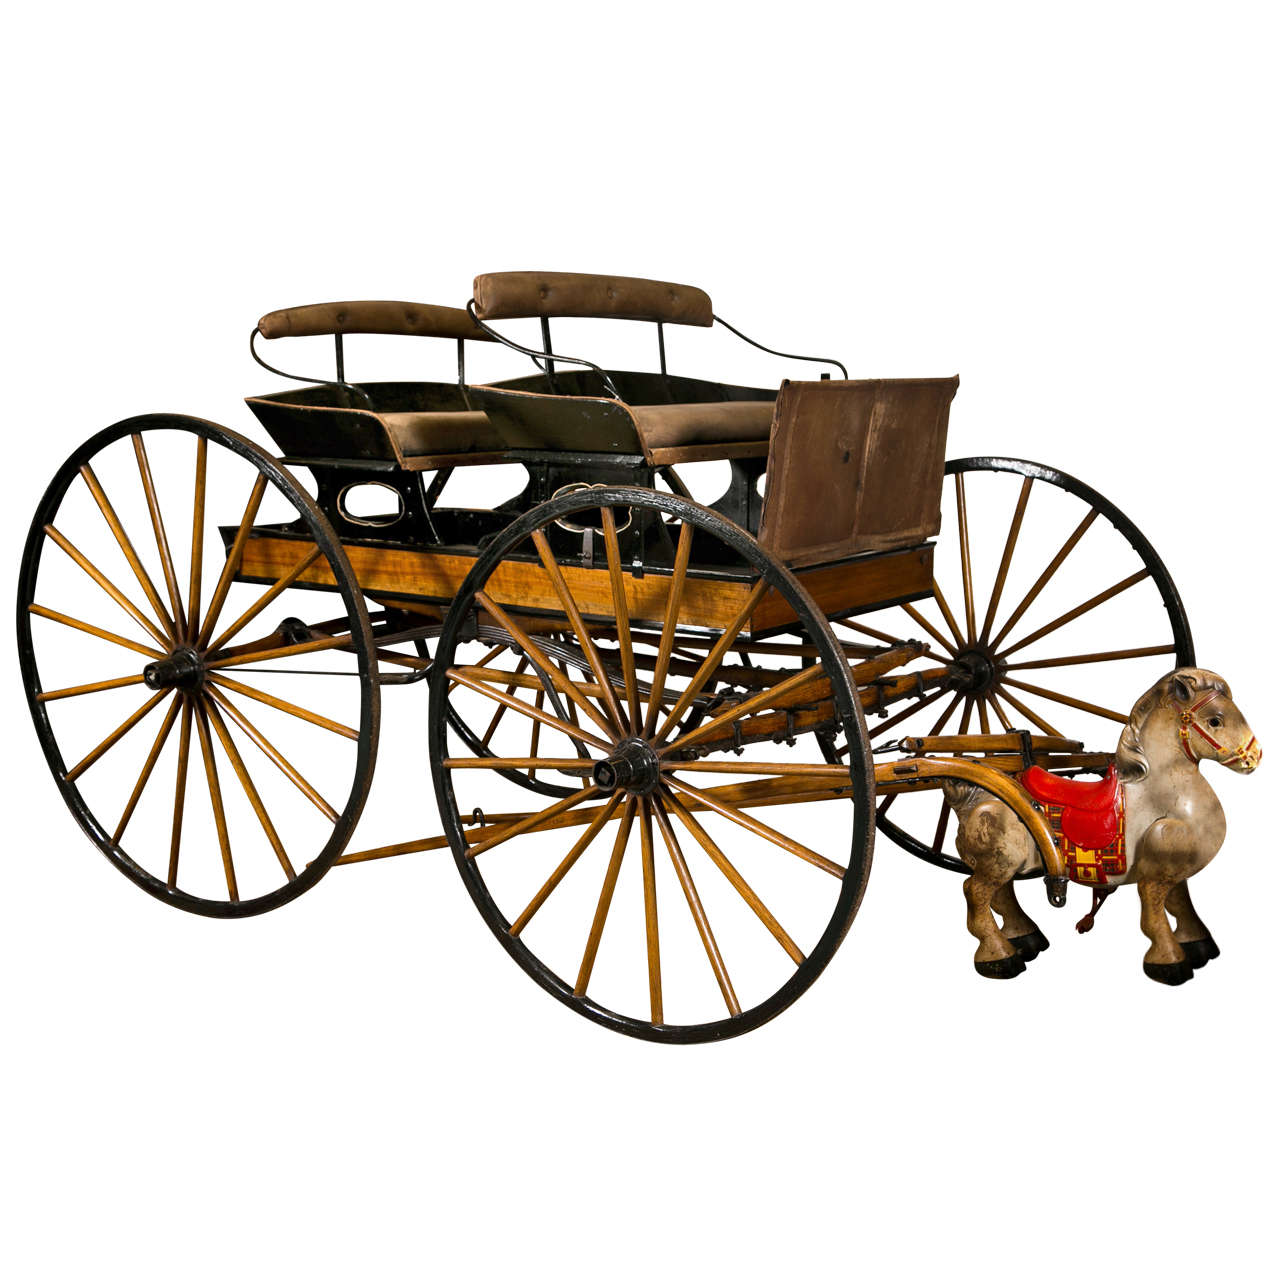 1280x1280 Antique Horse Drawn Buggy Carriage Wagon